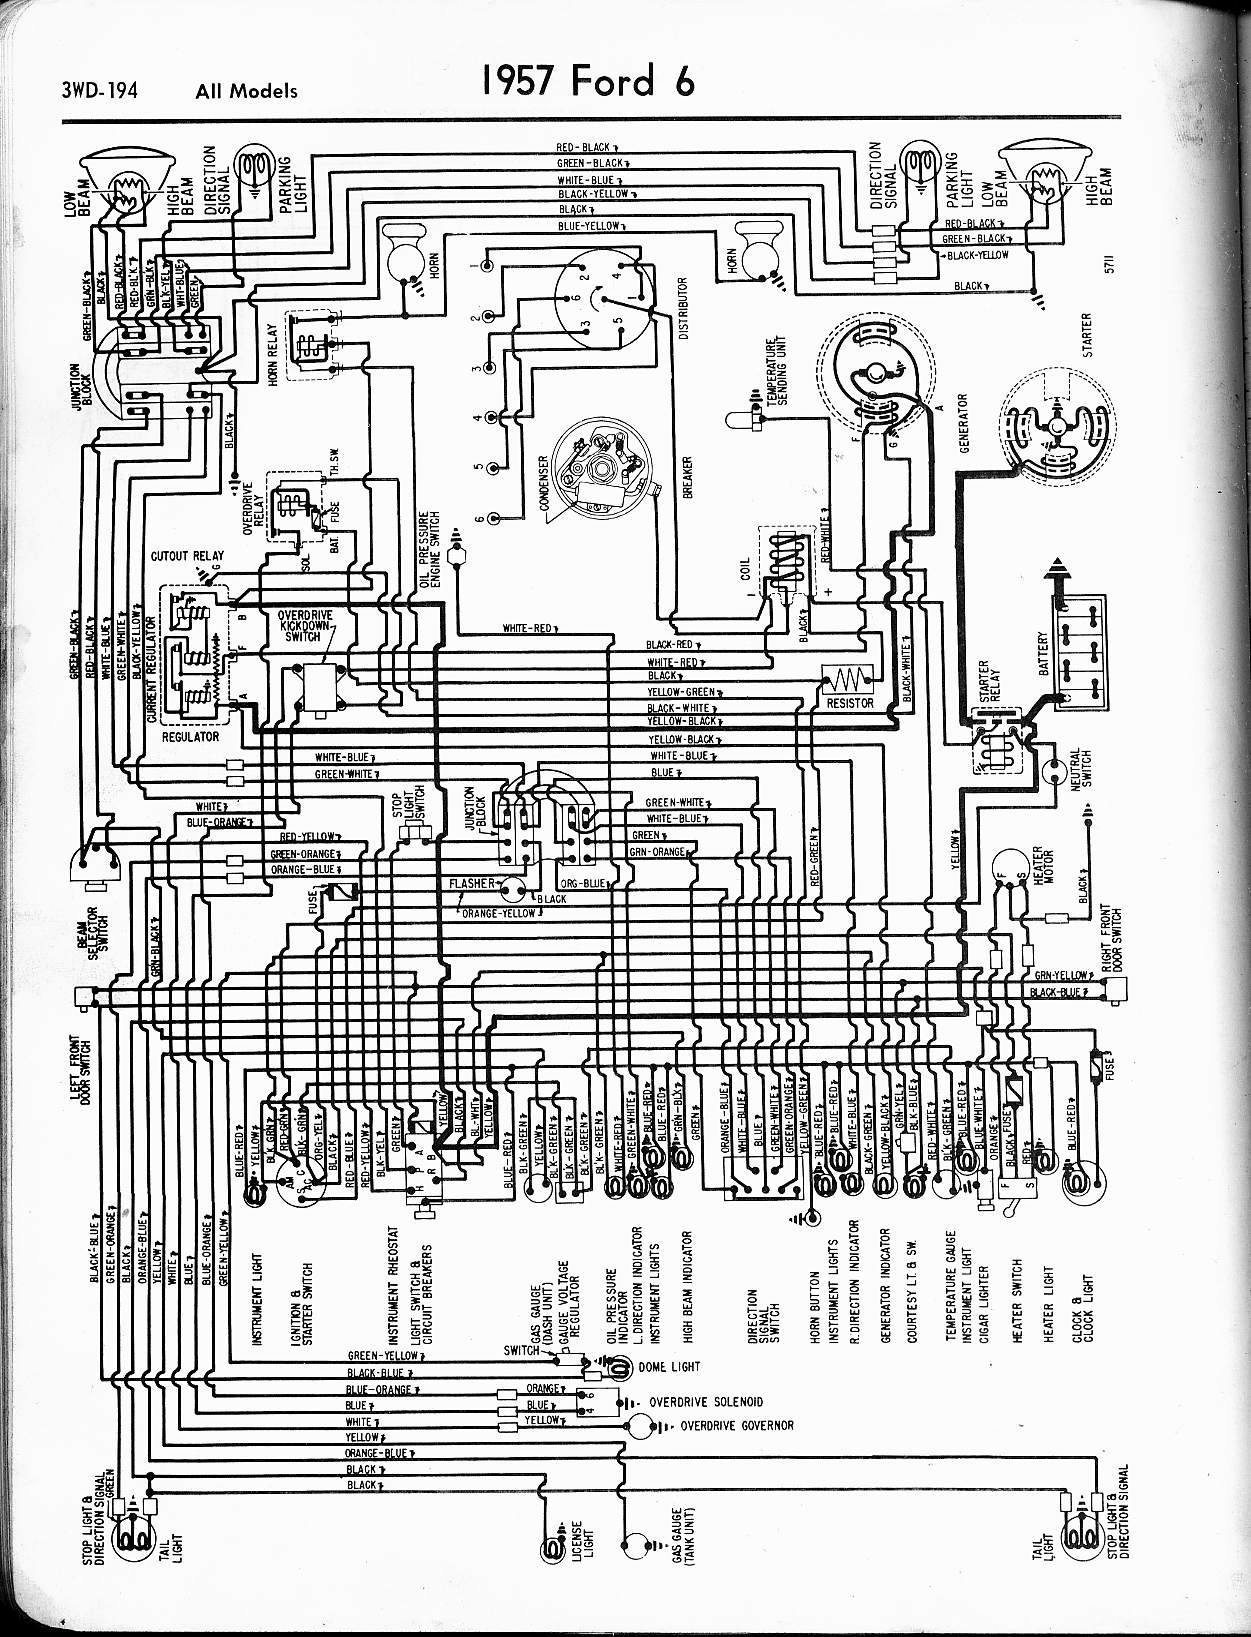 57_ford_wiring ford diagrams ford ltl 9000 wiring diagram at bakdesigns.co